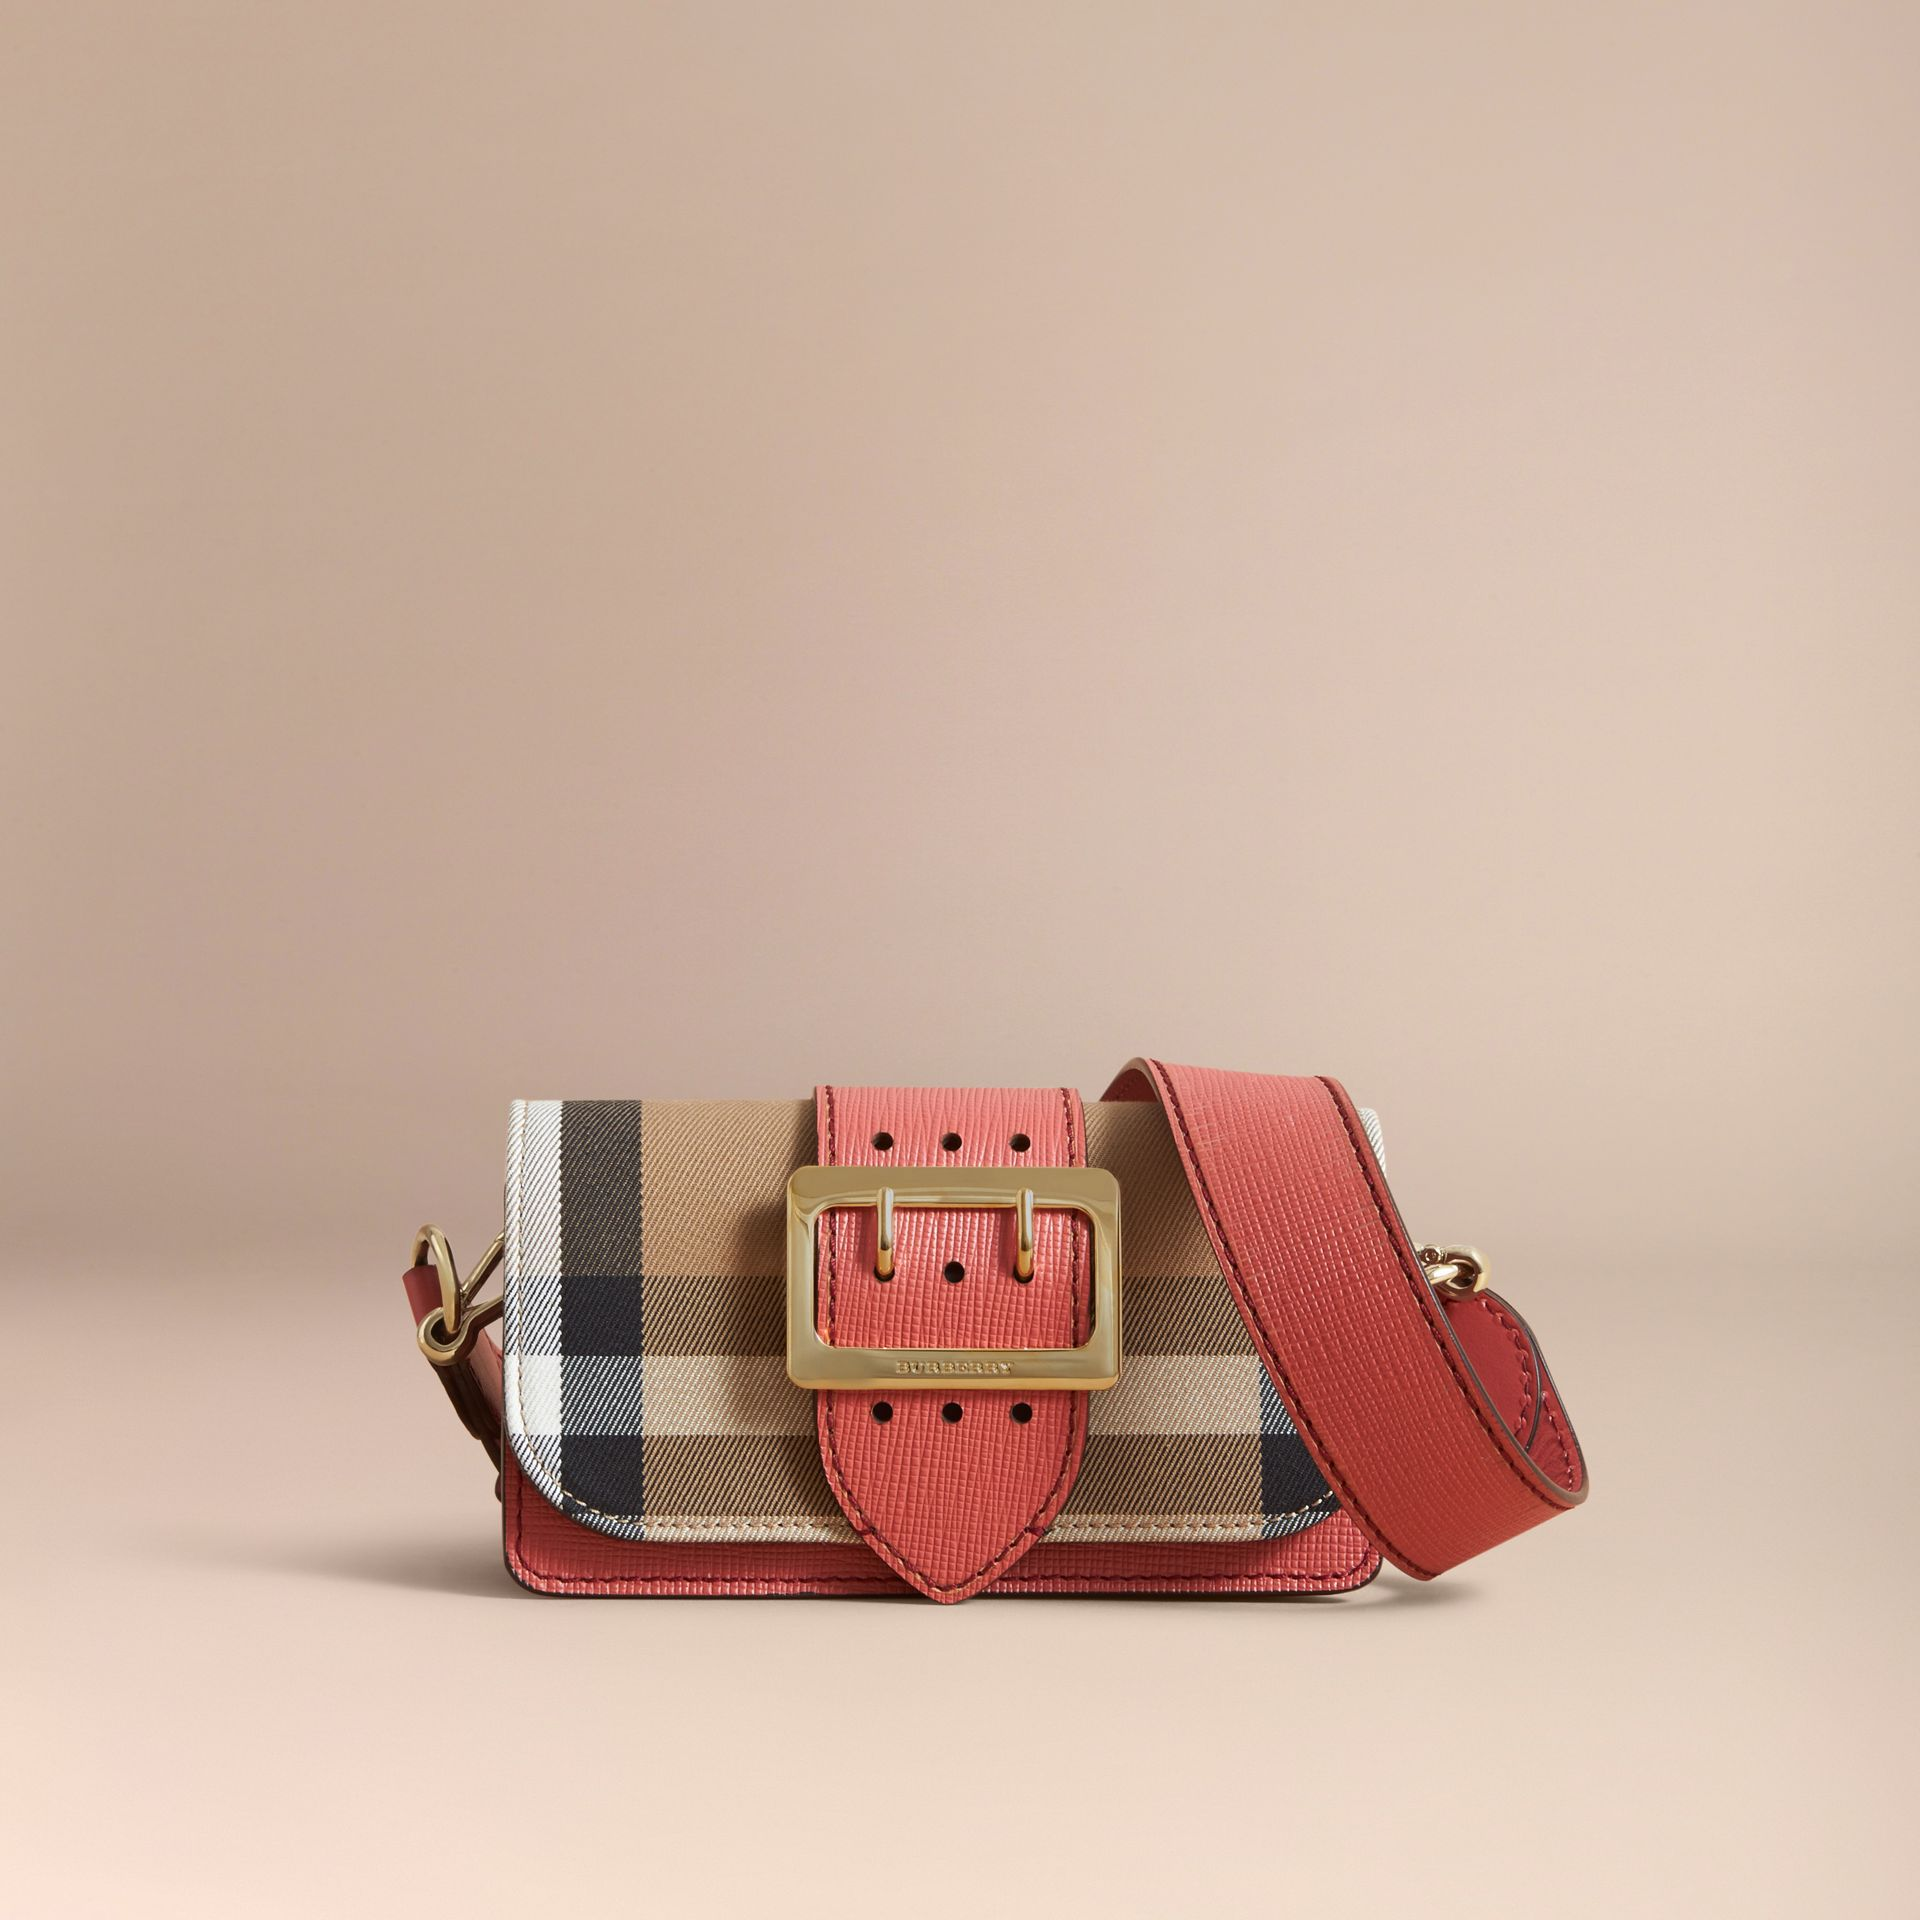 The Small Buckle Bag in House Check and Leather in Cinnamon Red - Women | Burberry - gallery image 8